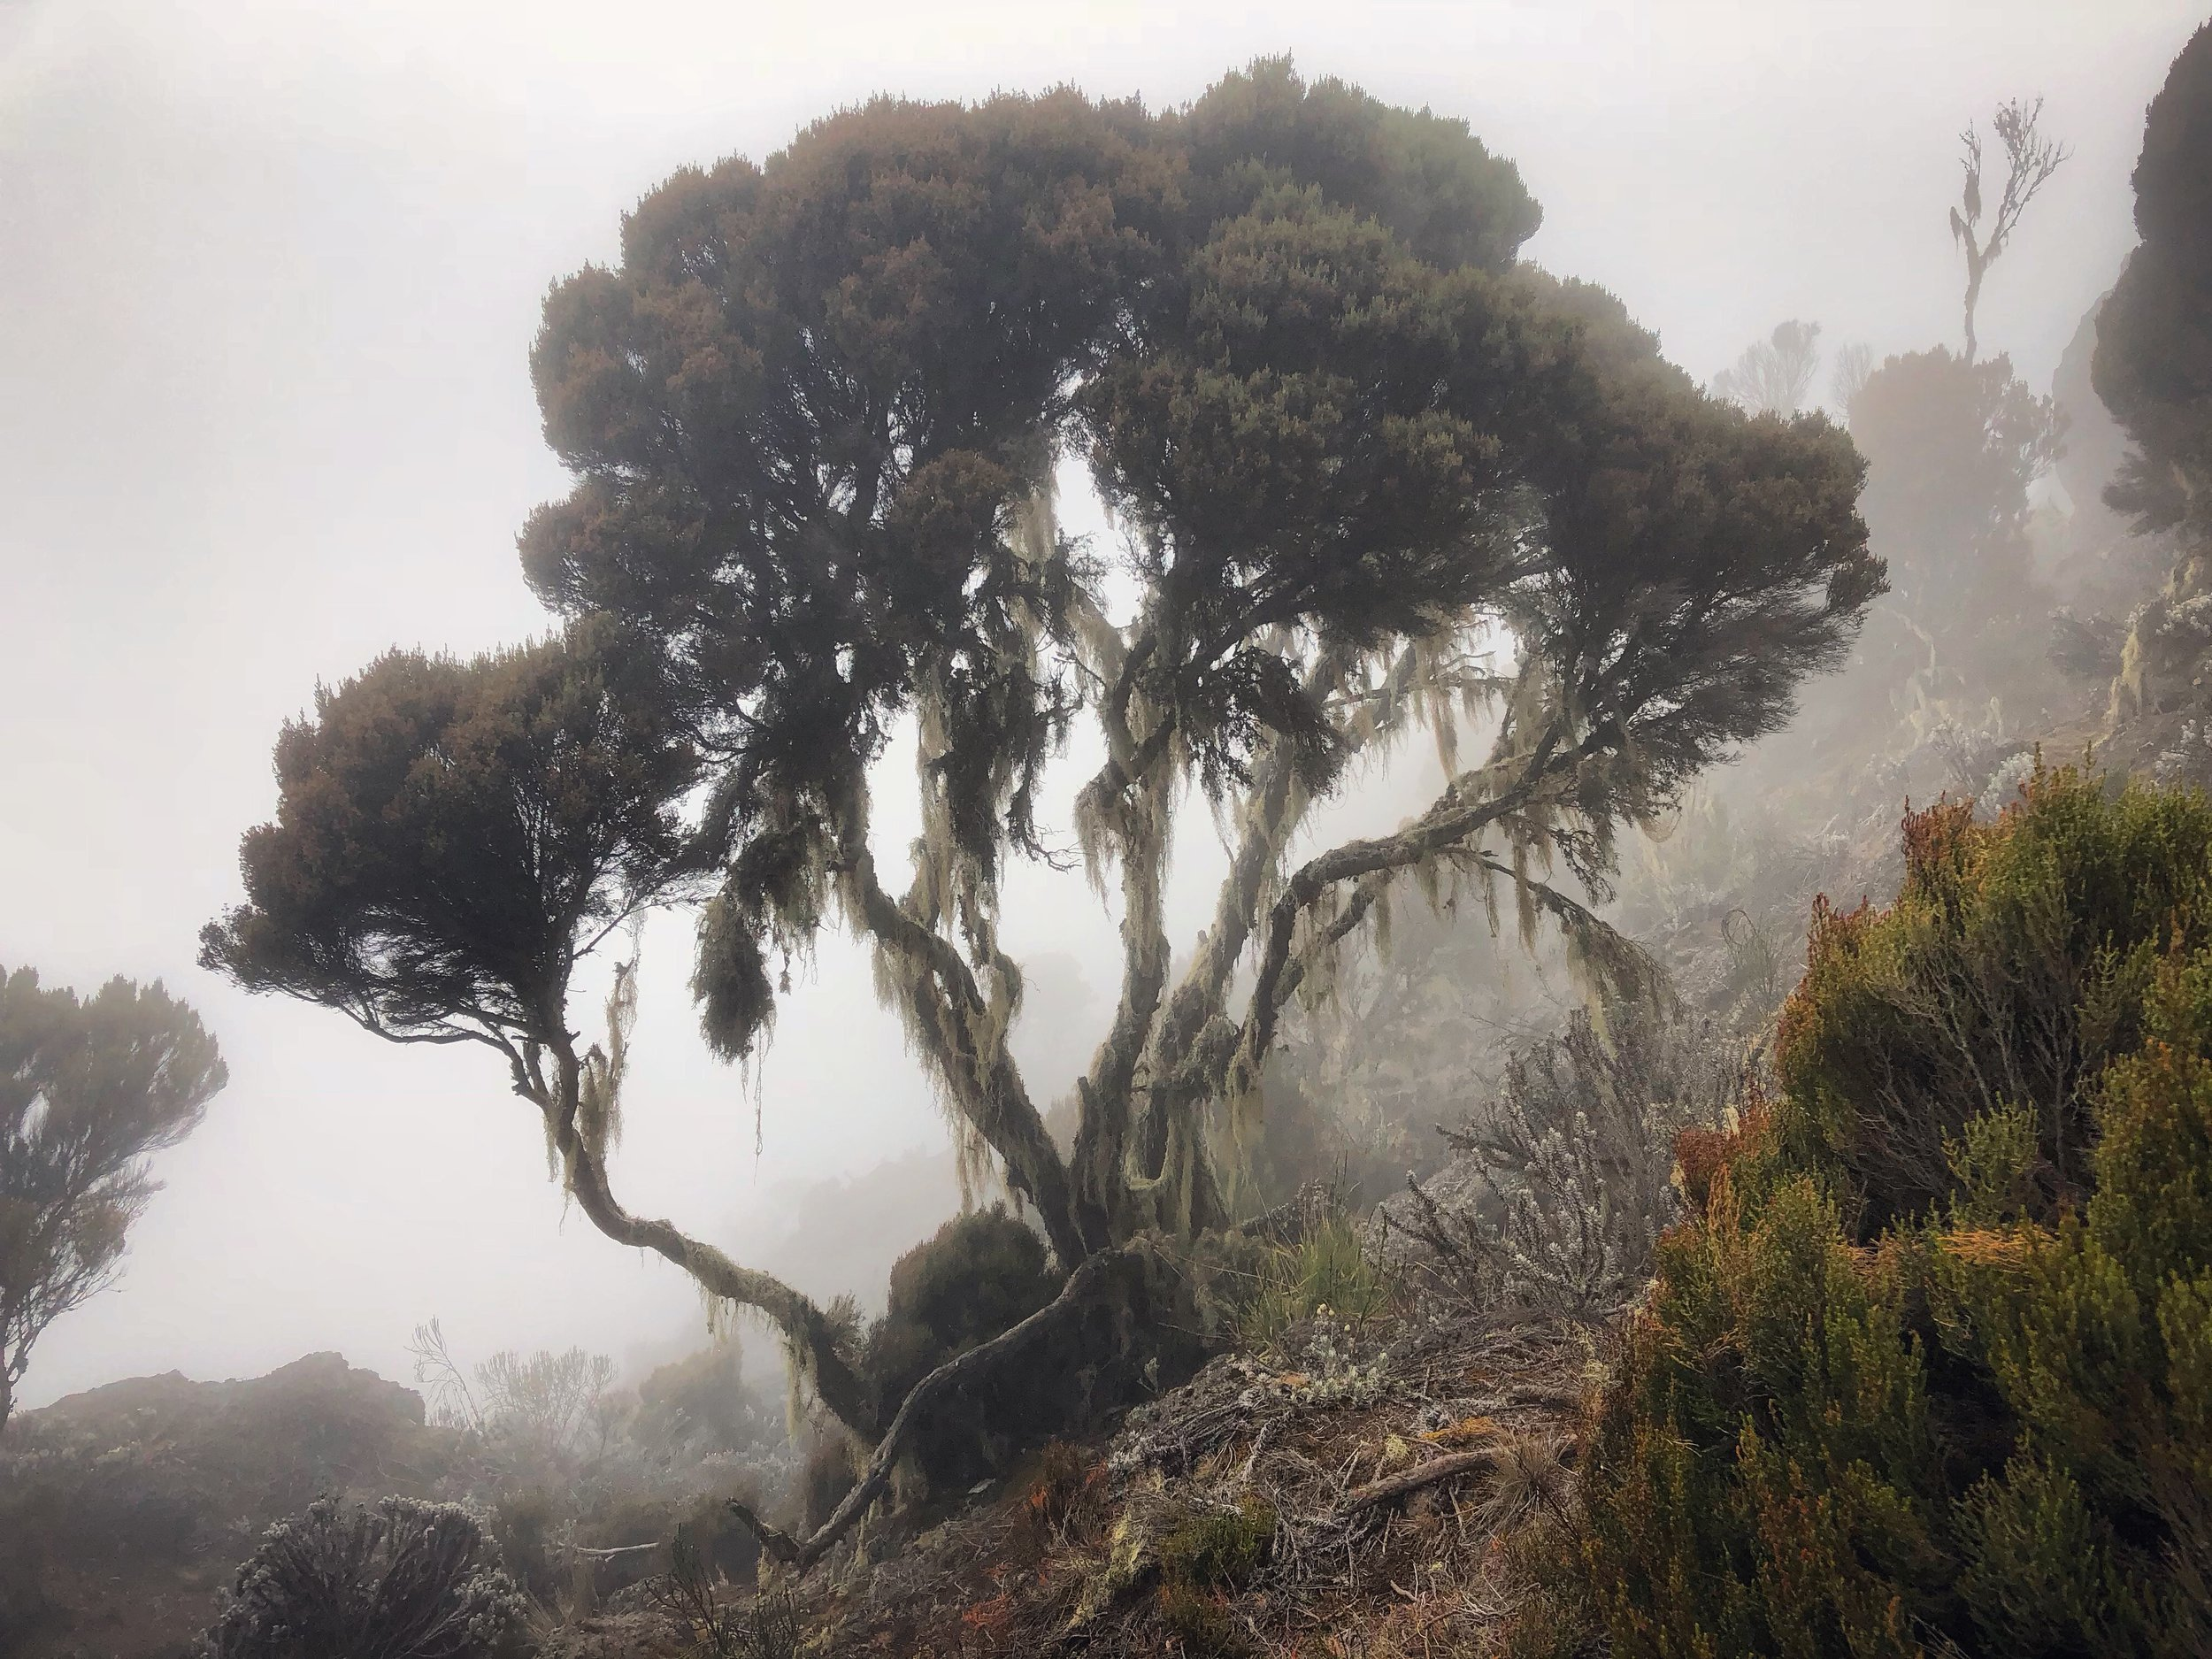 We loved the misty atmosphere and vegetation